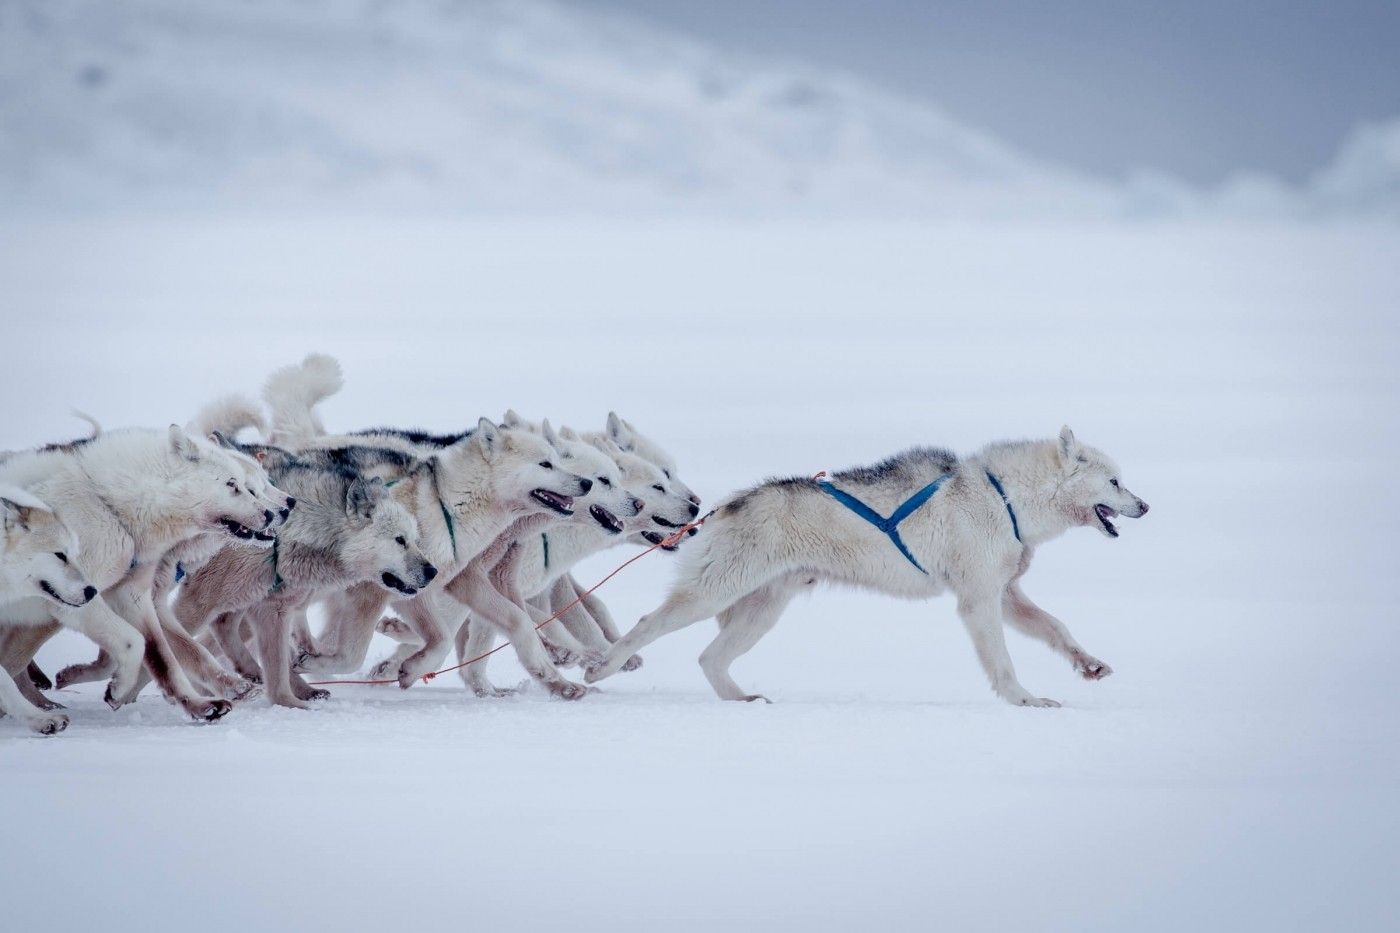 Sled dogs at full speed outside Oqaatsut in Greenland. Photo by Mads Pihl, Visit Greenland